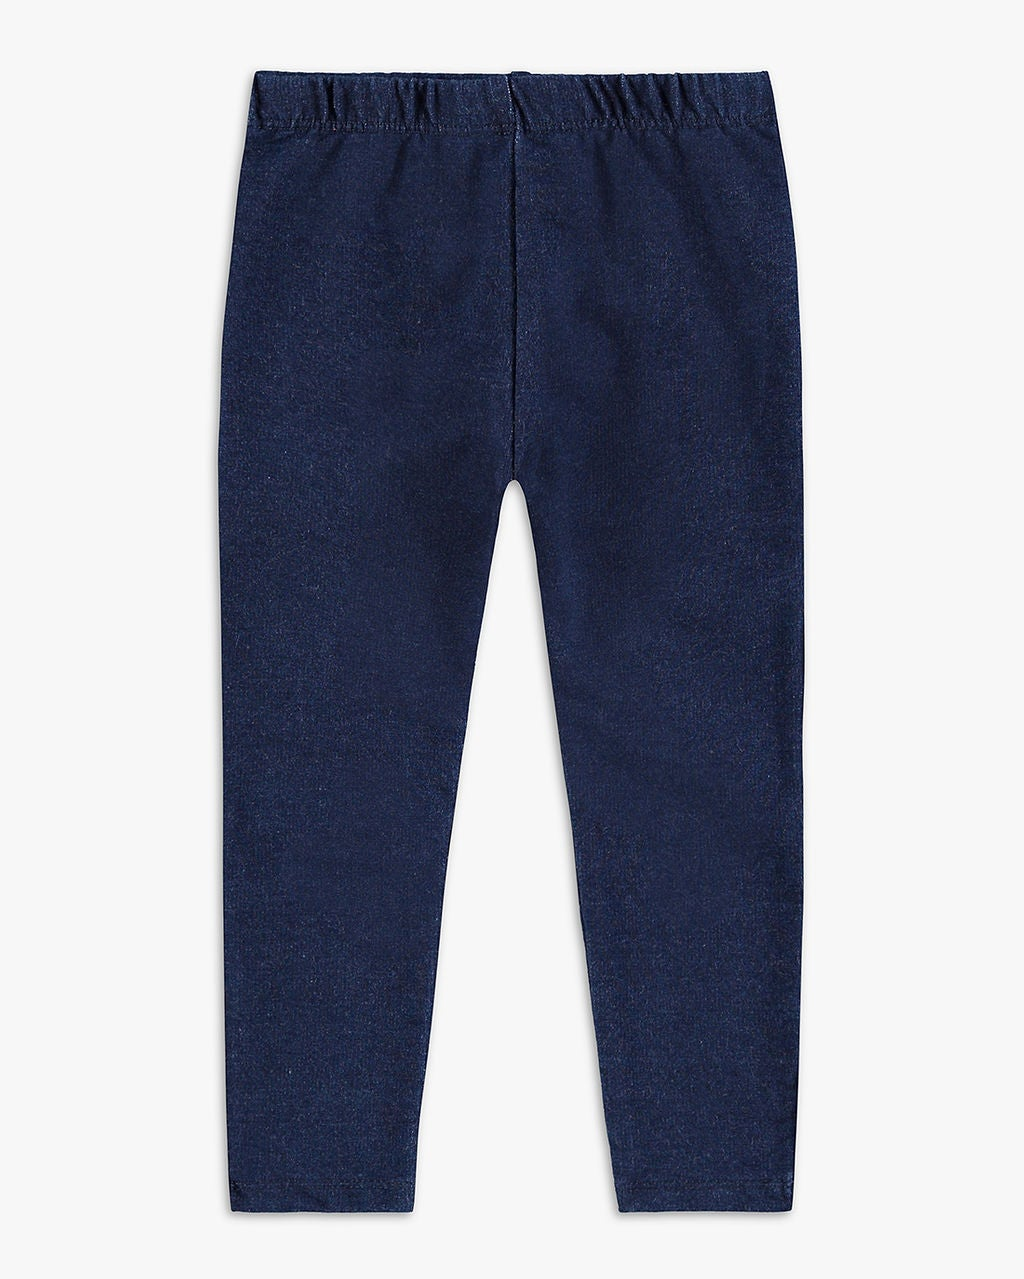 Splendid Girl's Indigo Legging